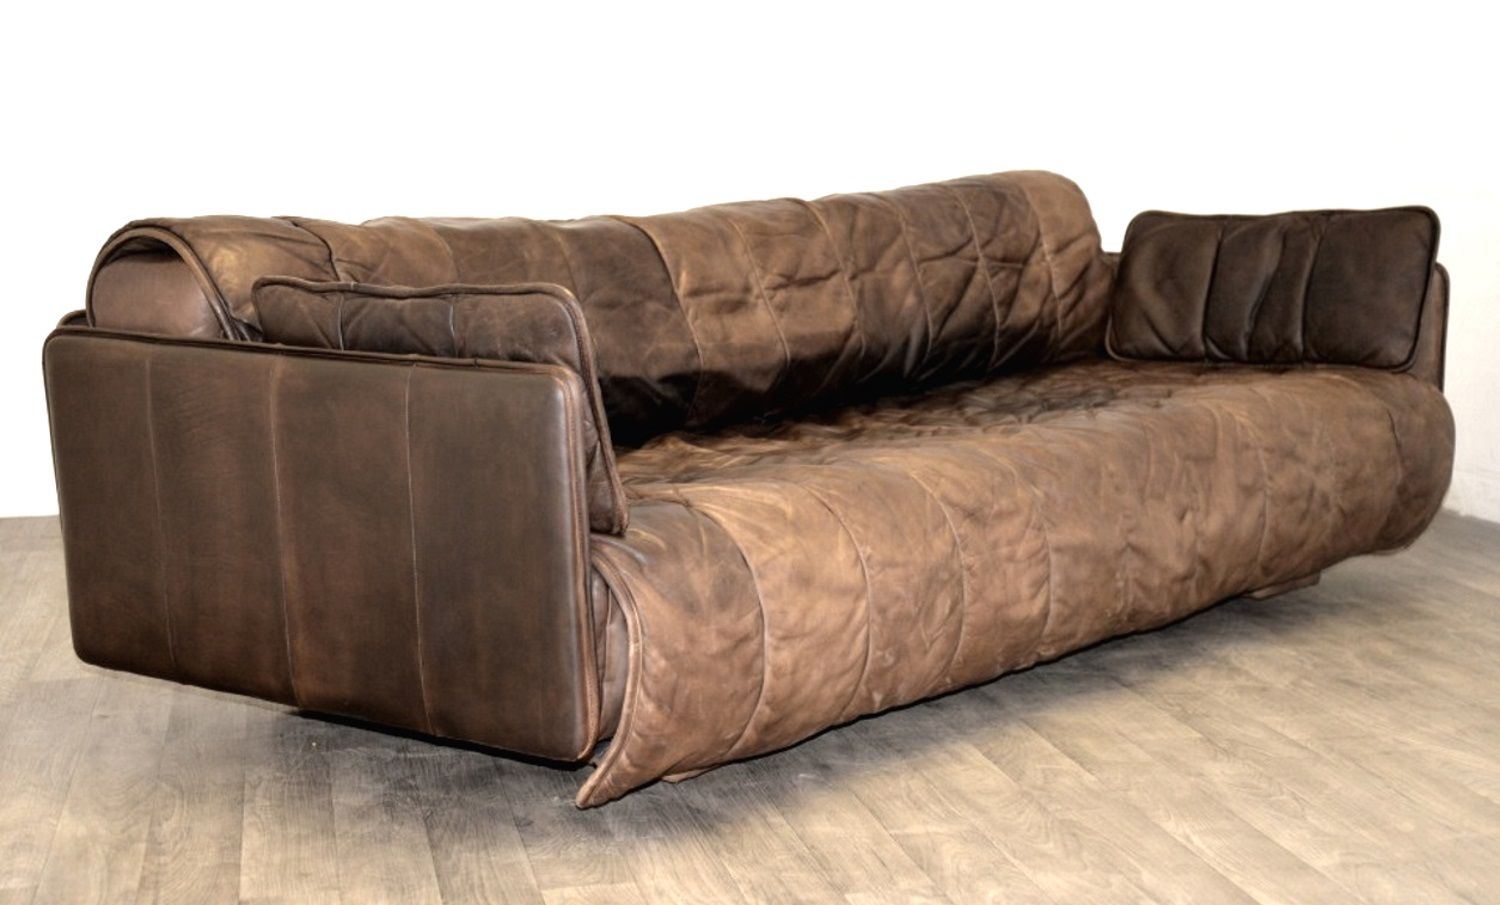 schweizer vintage leder schlafsofa von de sede 1970er bei pamono kaufen. Black Bedroom Furniture Sets. Home Design Ideas